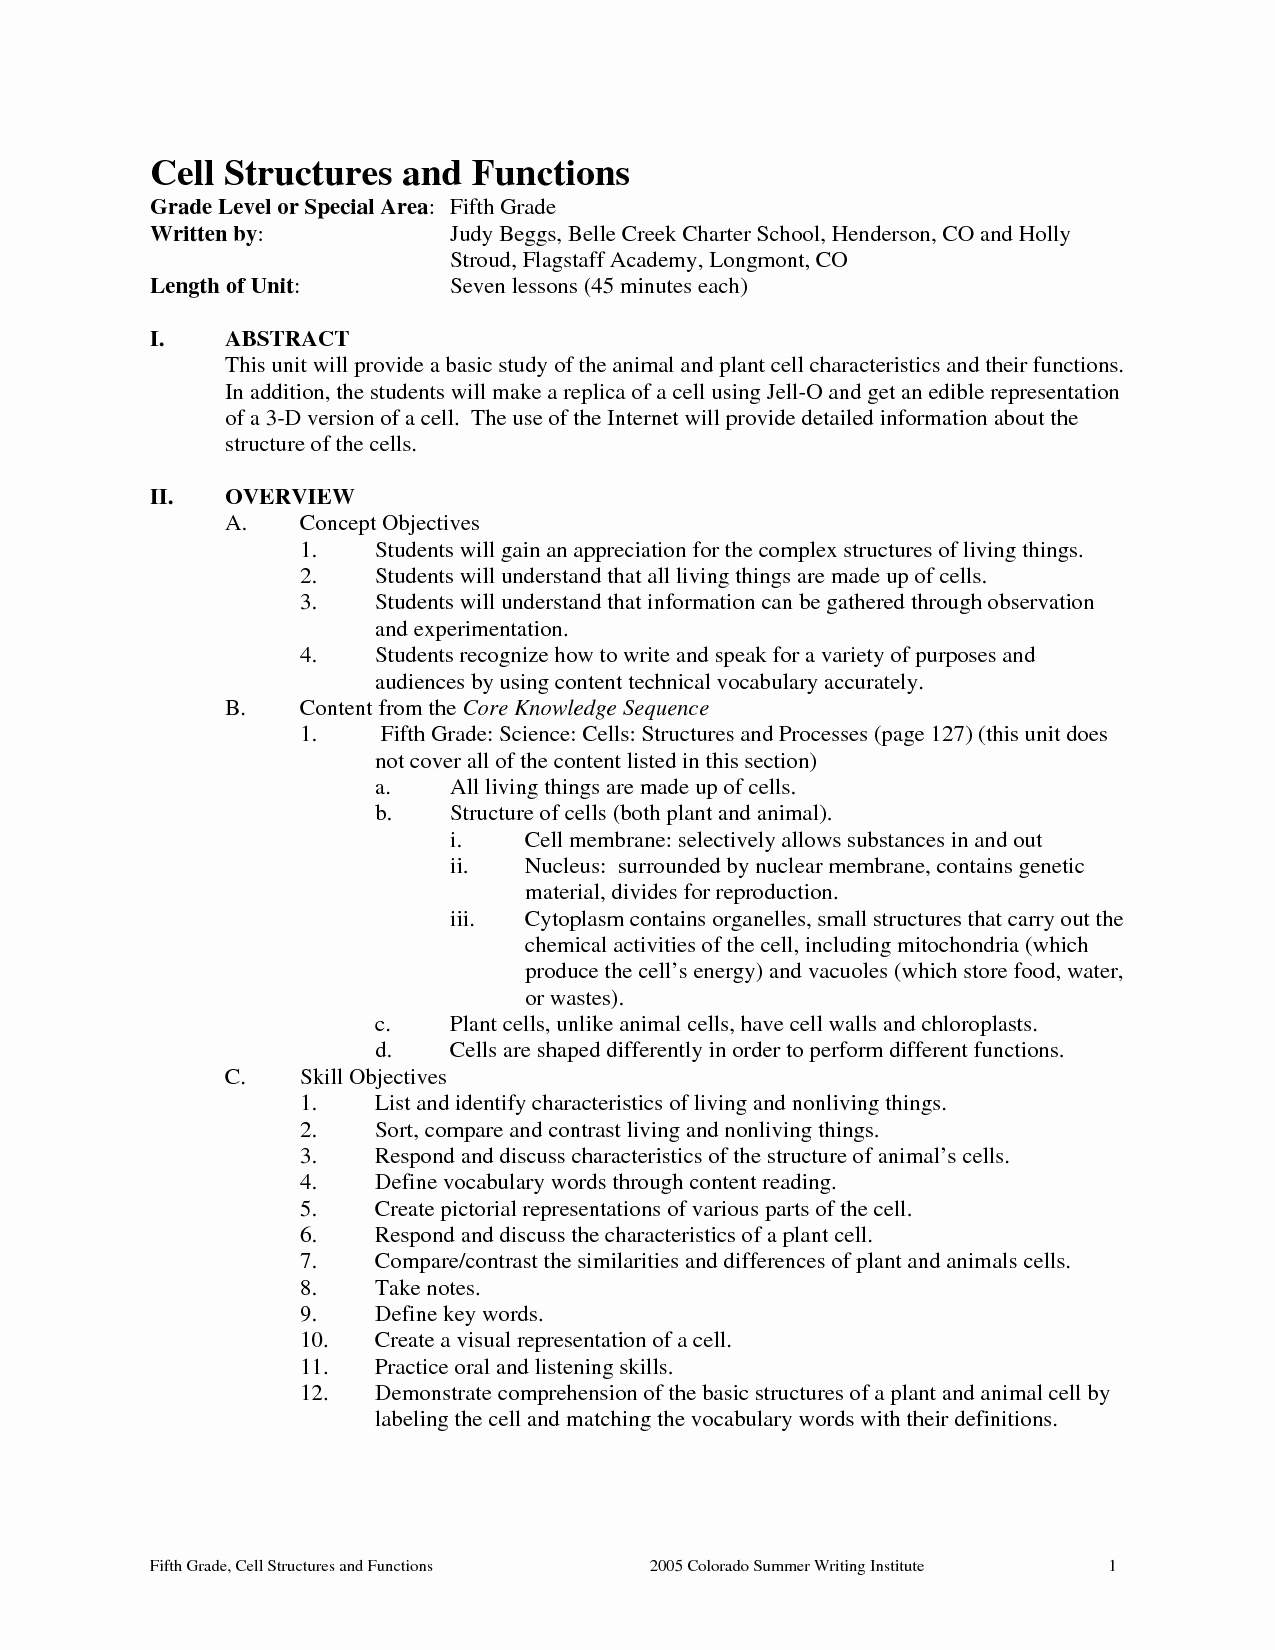 Cell Structure and Function Worksheet Best Of 13 Best Of Plant Structure and Function Worksheet